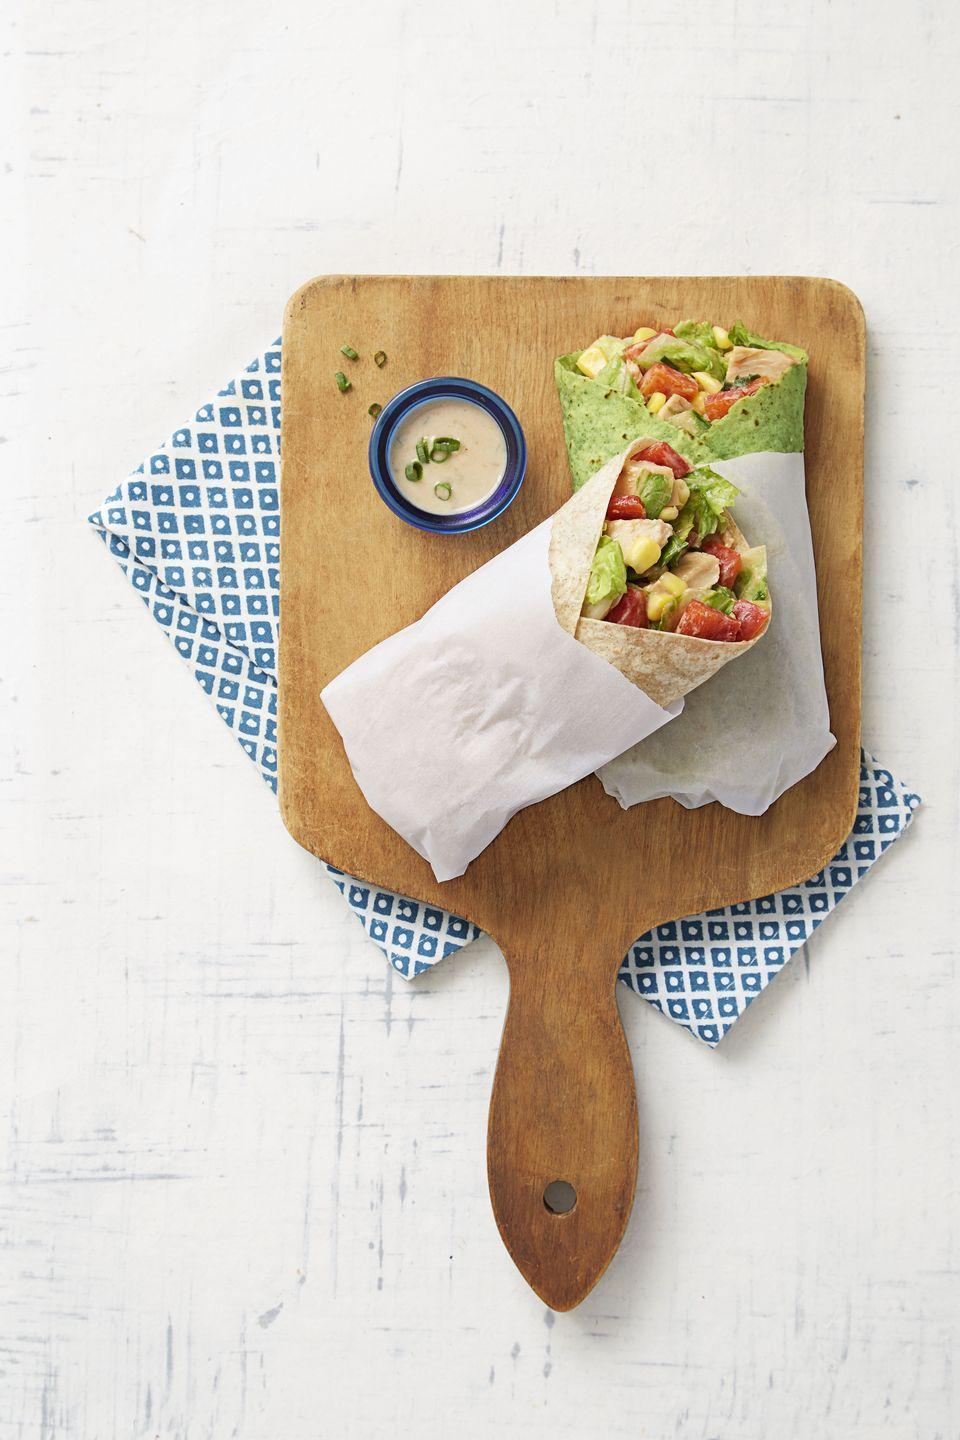 "<p>Forgo the fast food for these super simple wraps made with (shhh ... ) store-bought ranch.</p><p><em><a href=""https://www.goodhousekeeping.com/food-recipes/a32409/bbq-ranch-chicken-wraps-recipe-ghk0515/"" rel=""nofollow noopener"" target=""_blank"" data-ylk=""slk:Get the recipe for BBQ-Ranch Chicken Wraps »"" class=""link rapid-noclick-resp"">Get the recipe for BBQ-Ranch Chicken Wraps »</a></em></p>"